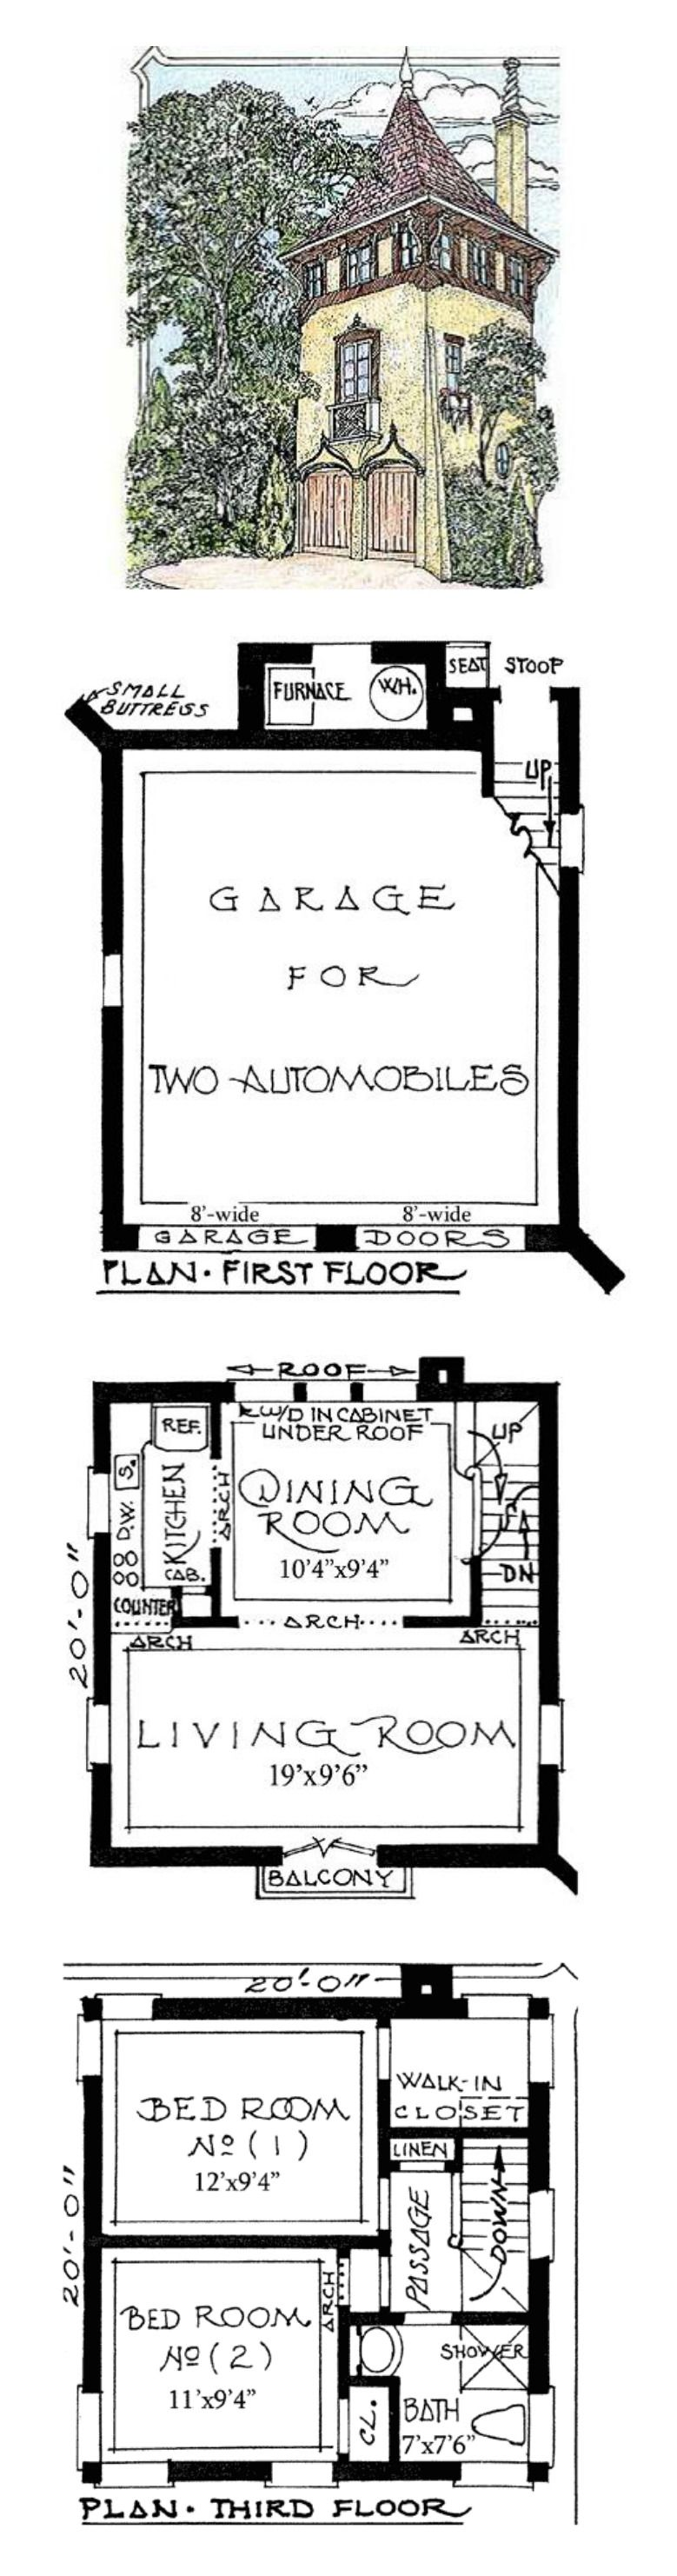 Architectural designs romantic carriage house plans Carriage house floor plans